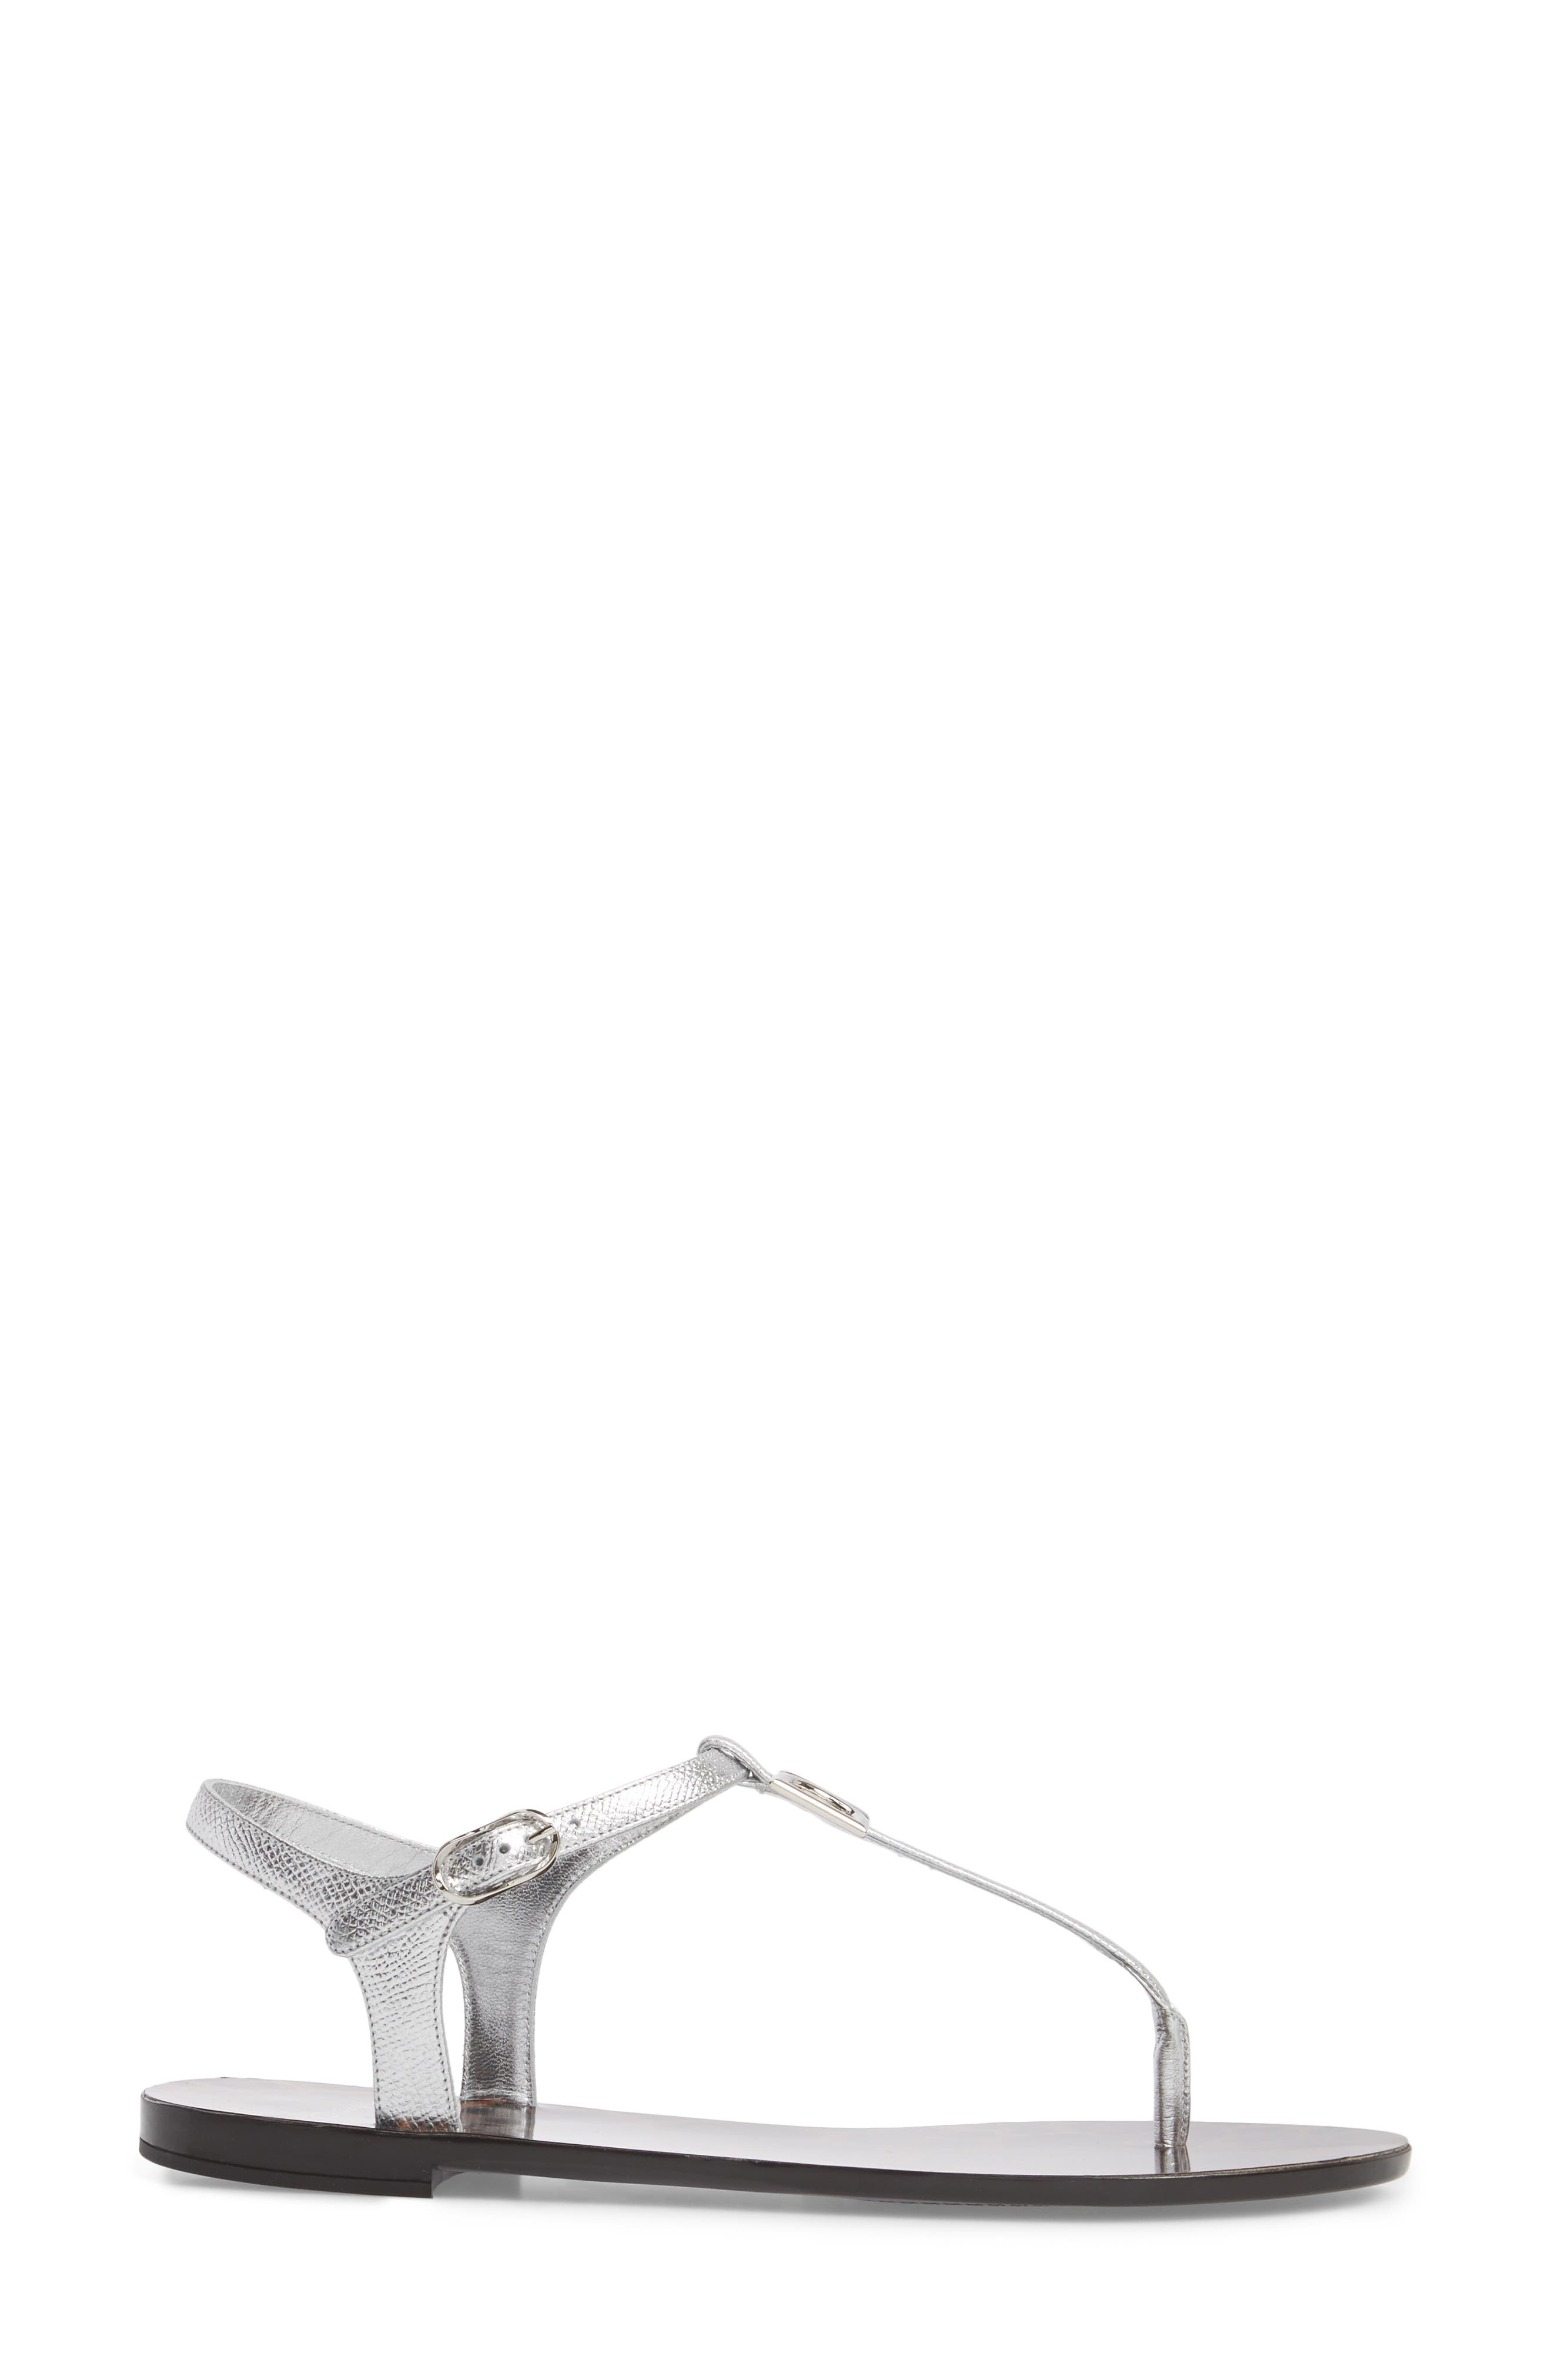 Dauphine Logo Sandal,                             Alternate thumbnail 3, color,                             040